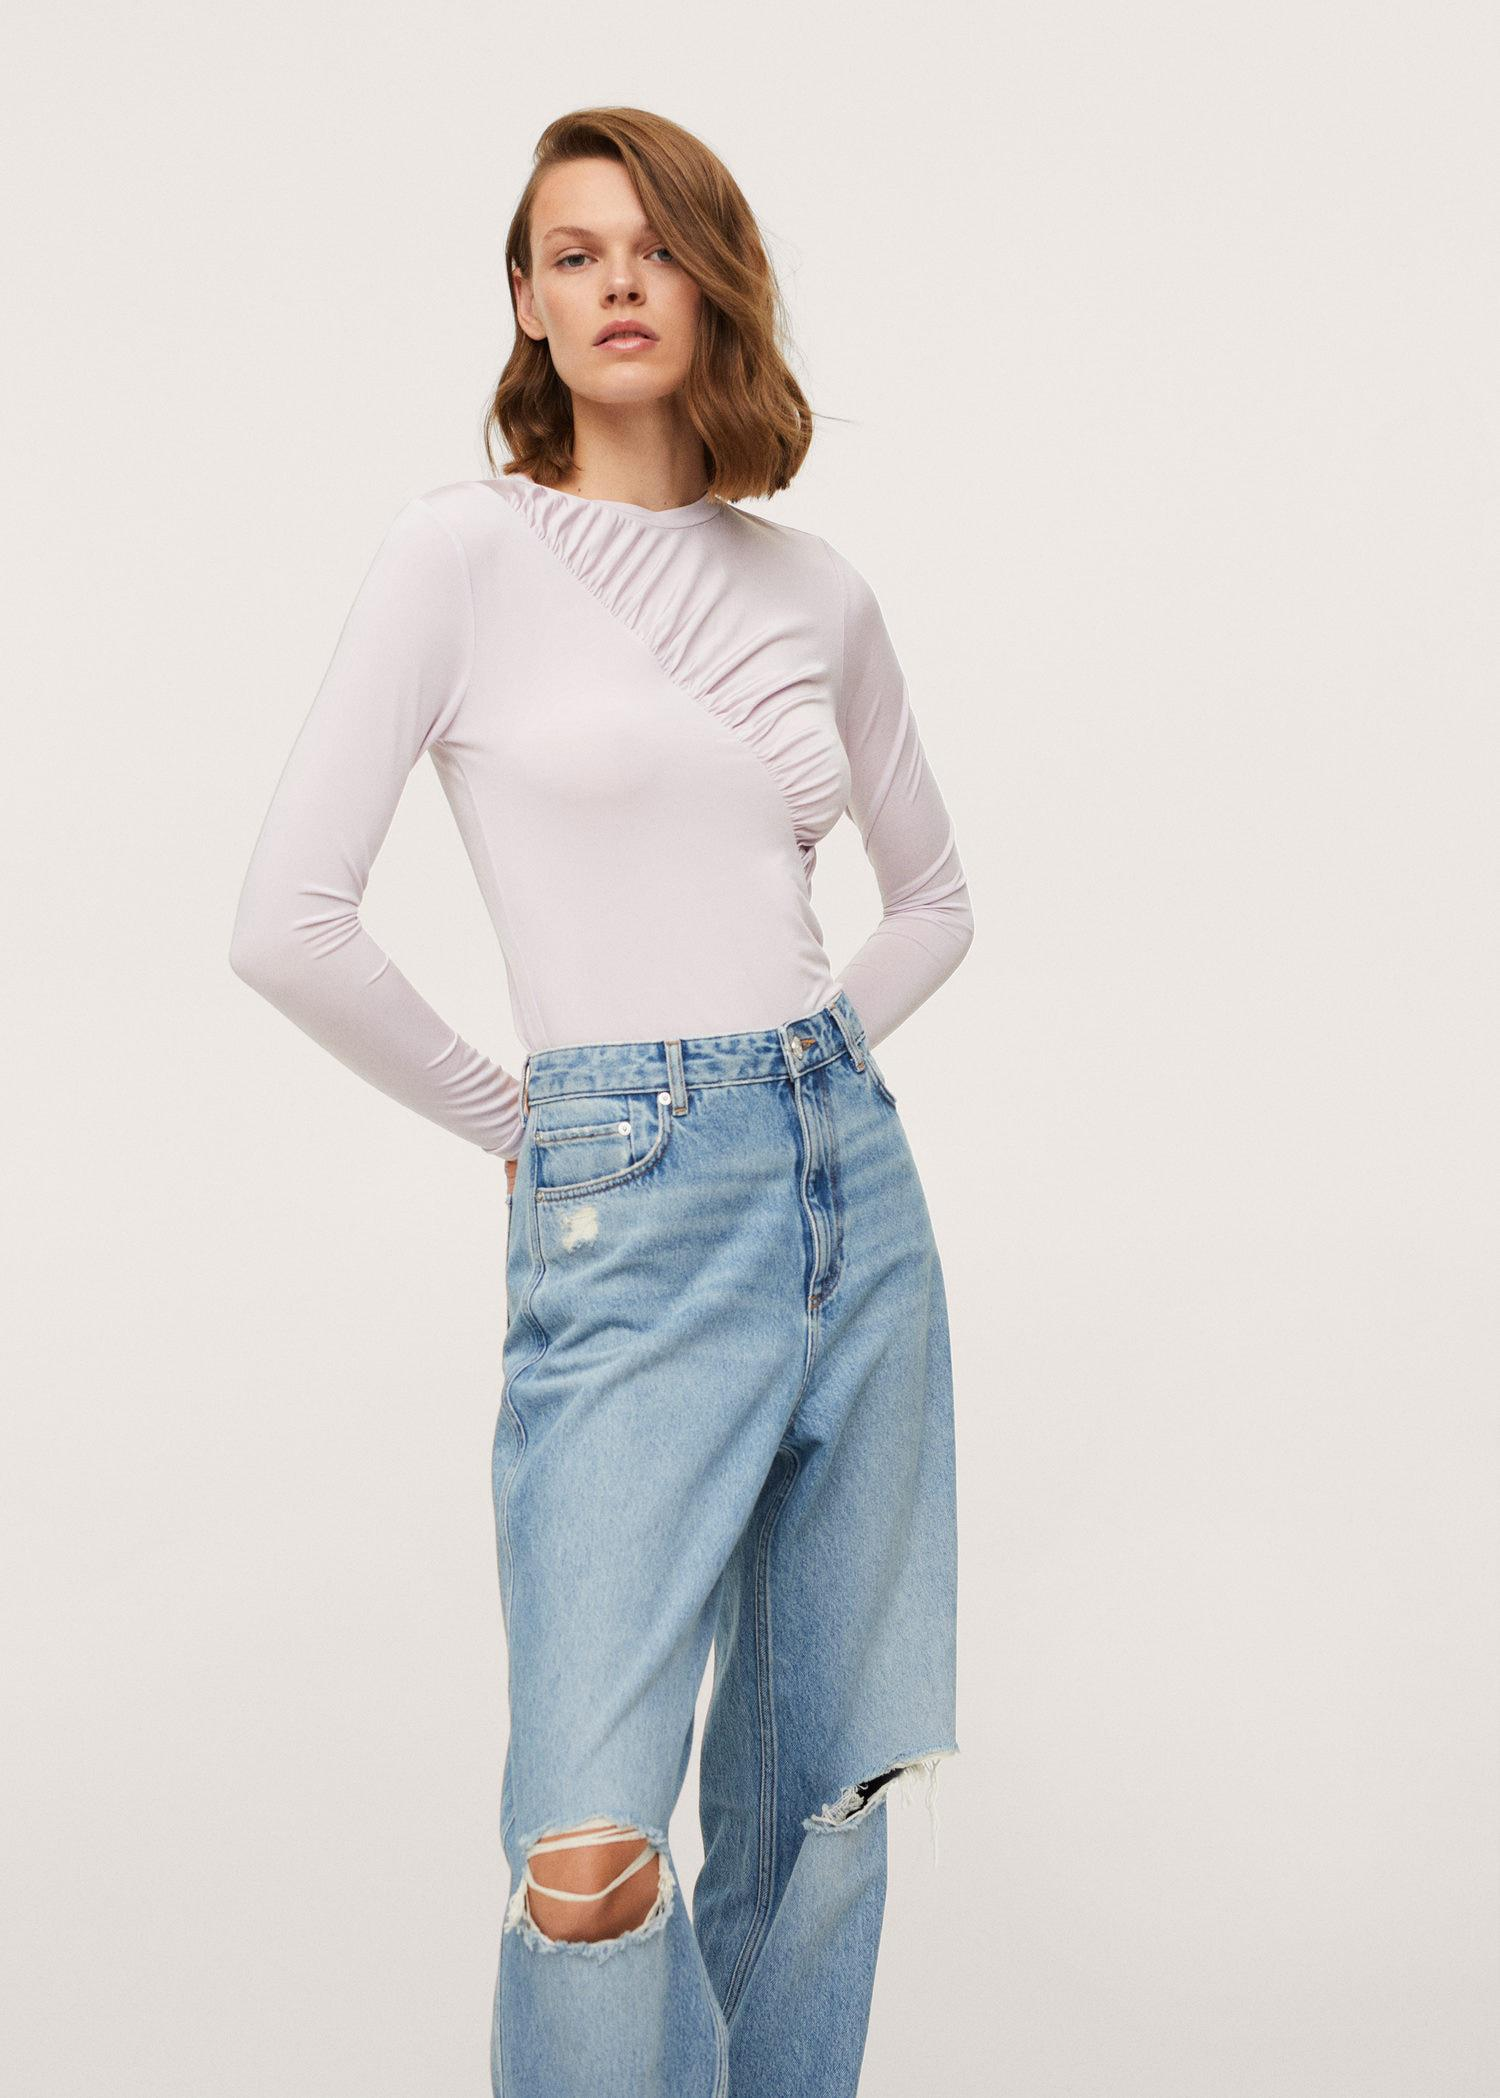 Long-sleeved t-shirt with ruffles